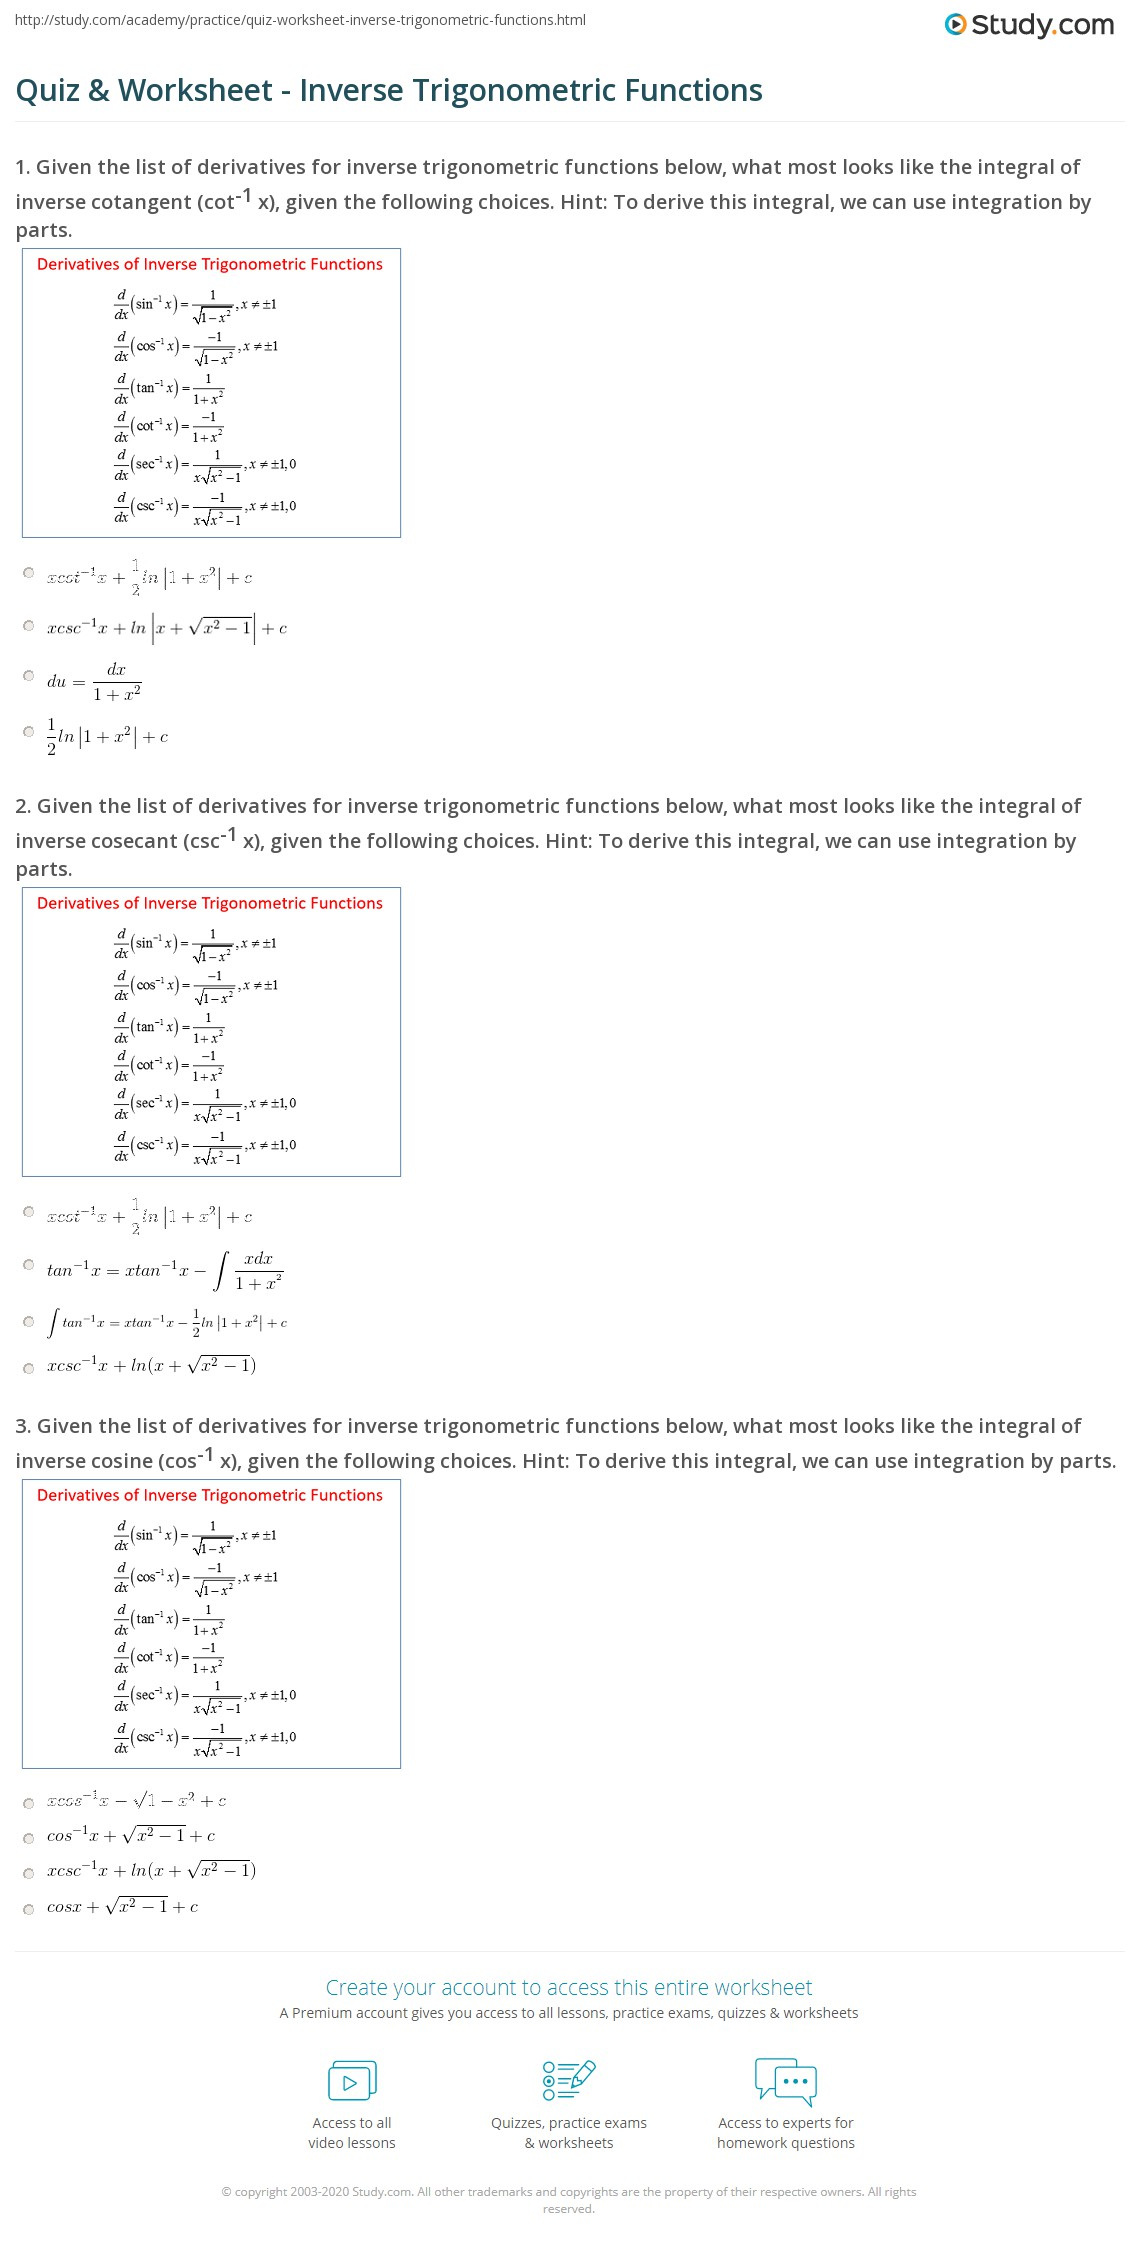 Quiz & Worksheet - Inverse Trigonometric Functions | Study com